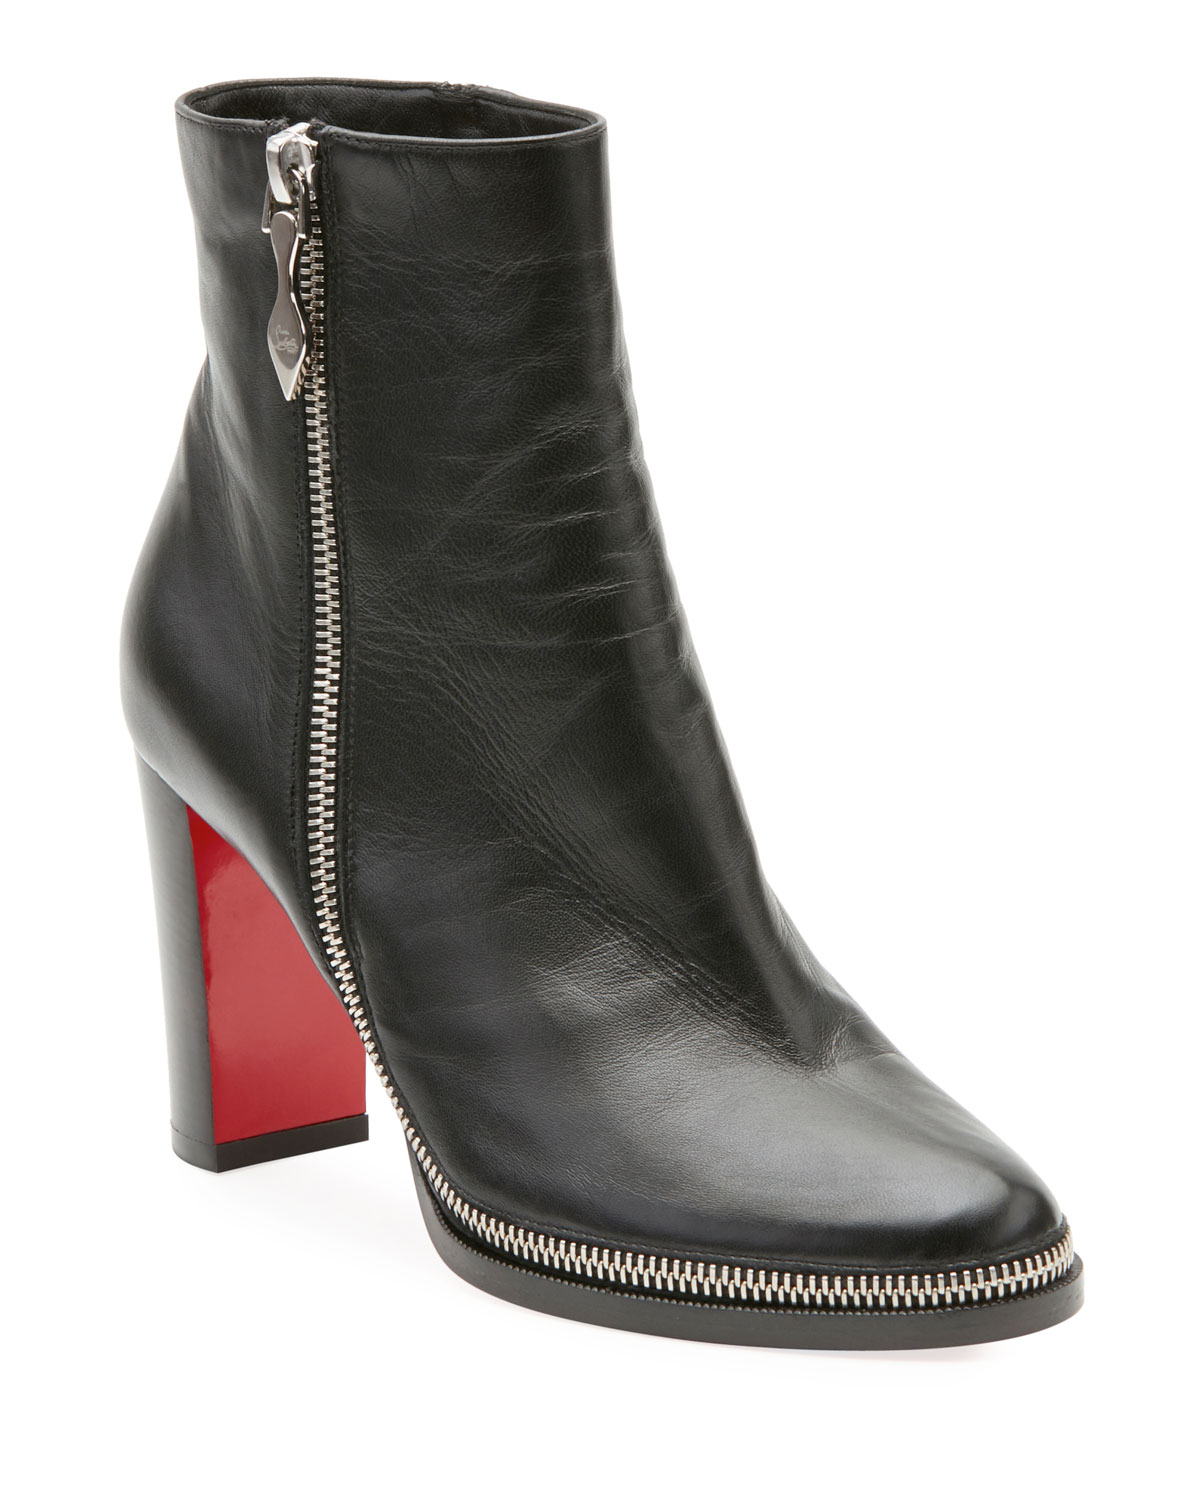 timeless design a4b78 fc959 Telezip Crinkled Leather Red Sole Ankle Boots